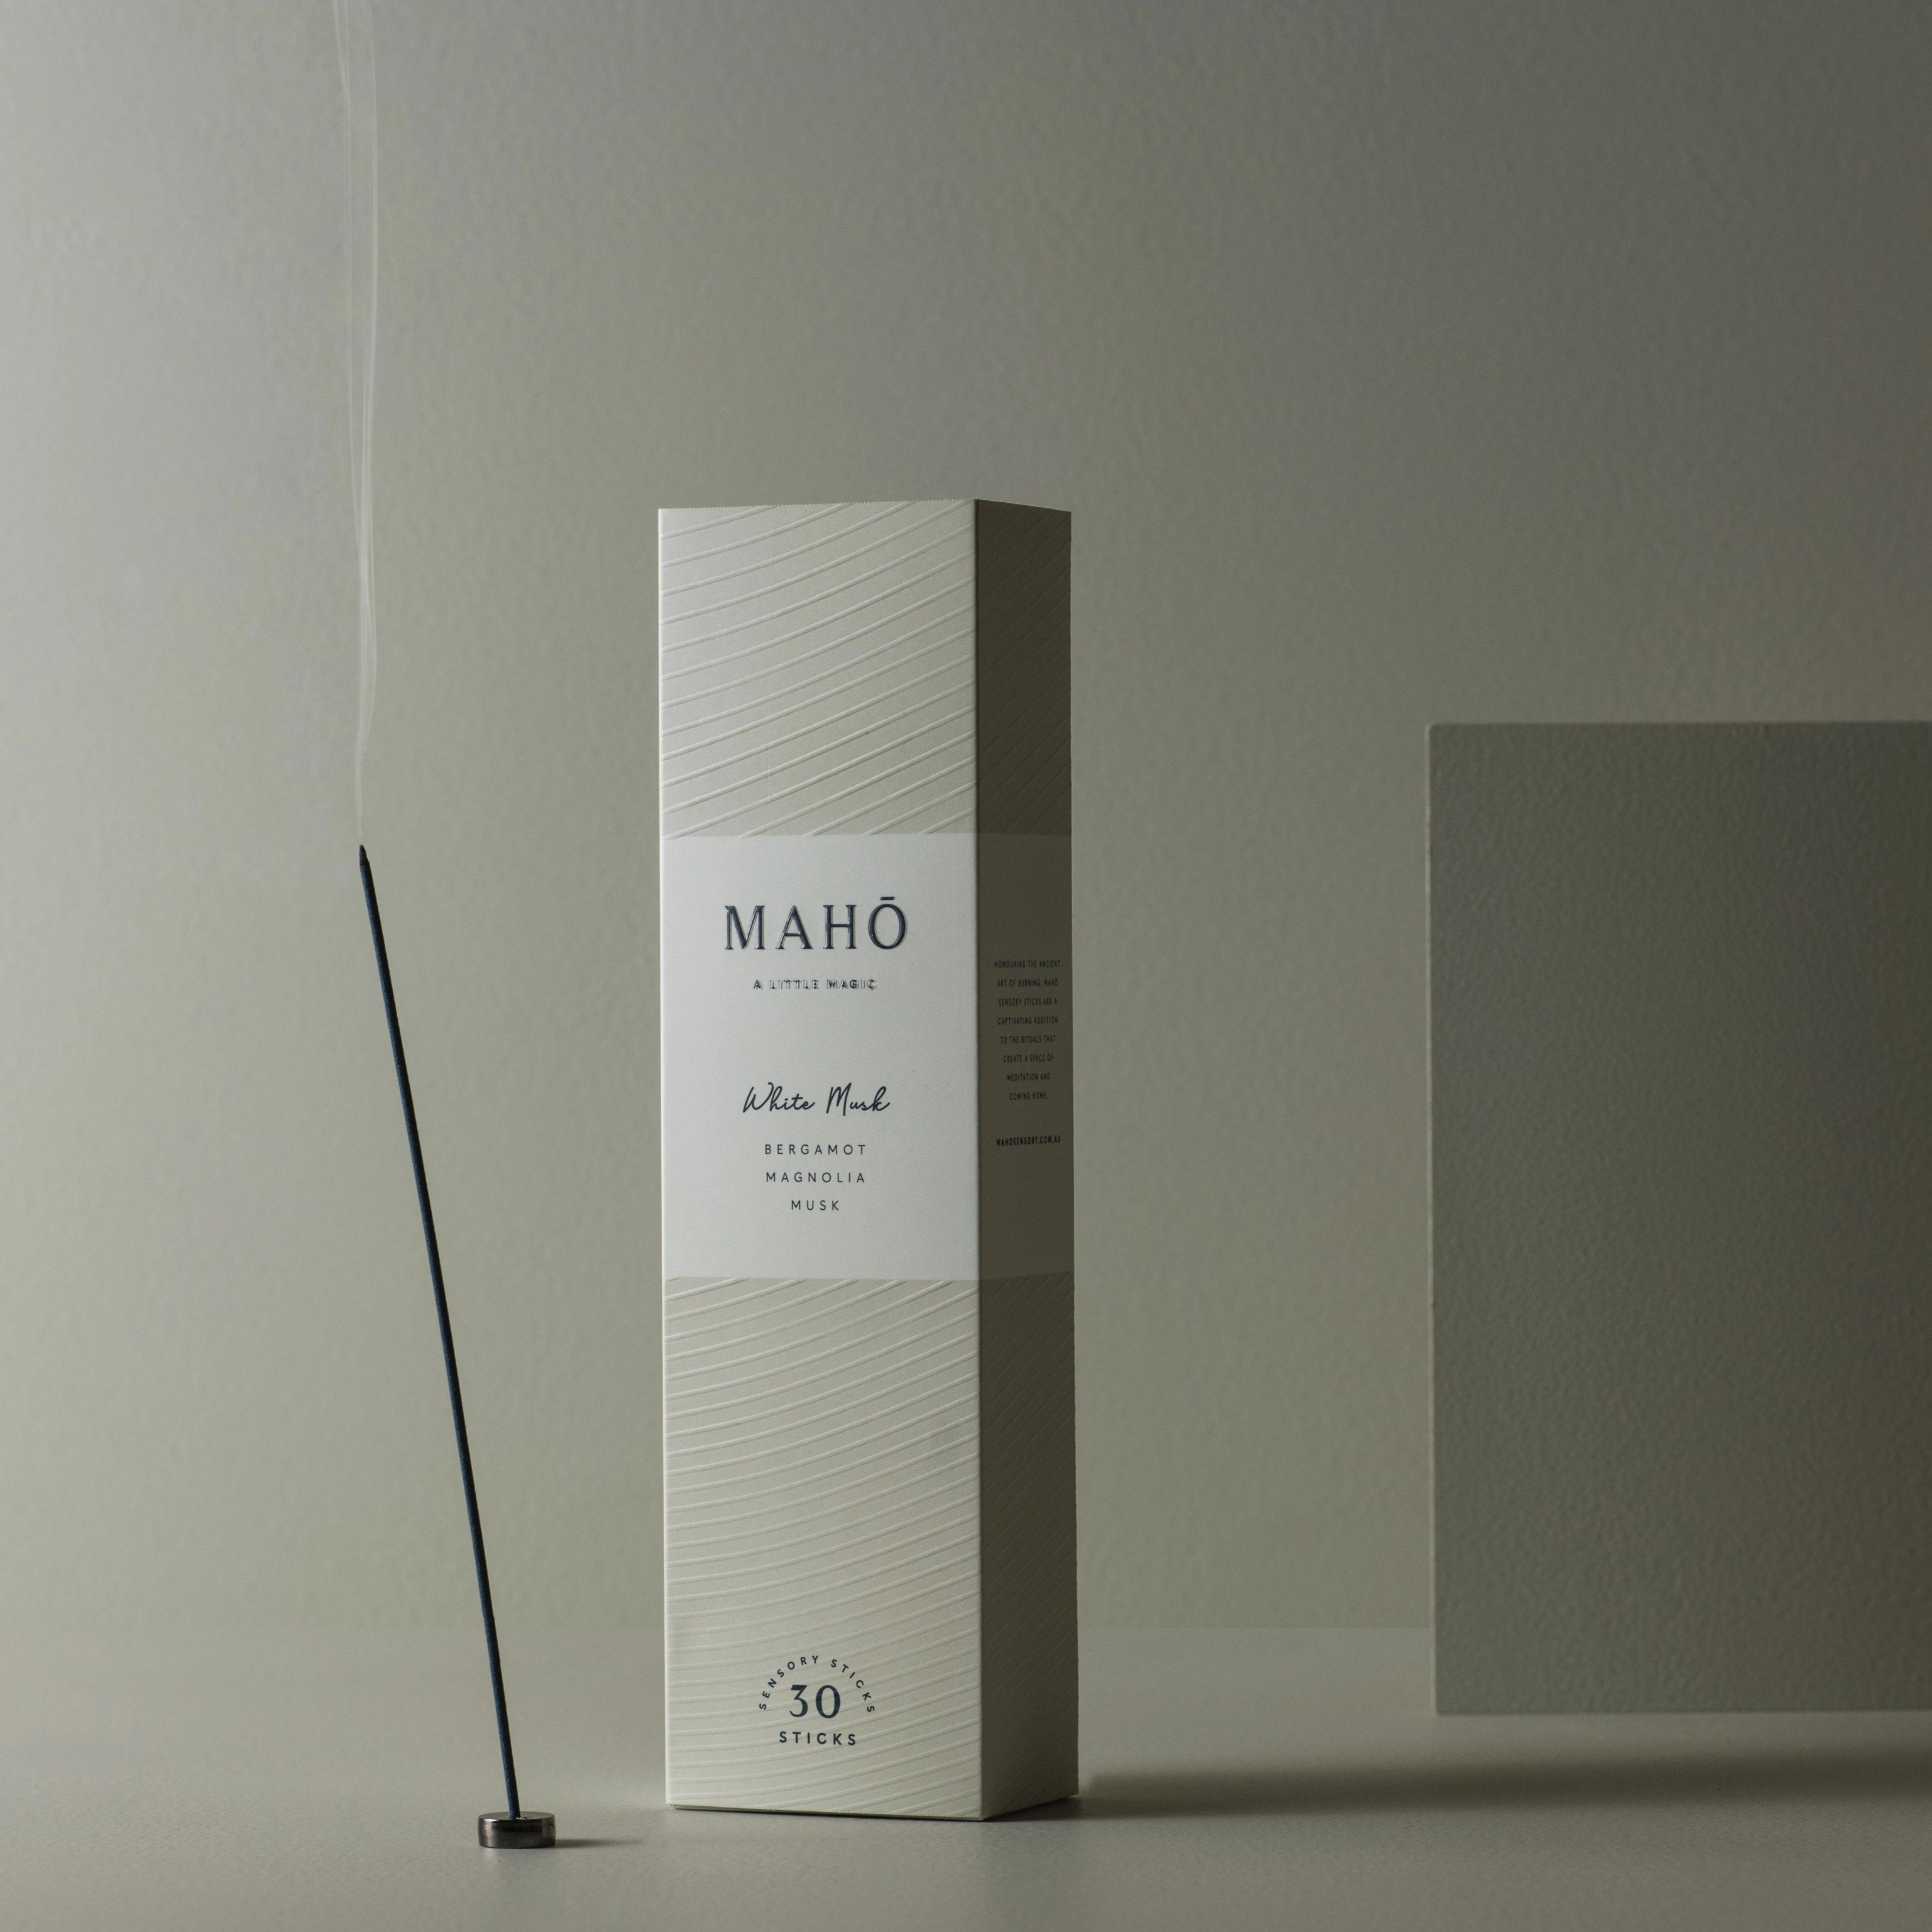 MAHŌ Sensory Sticks - White Musk, Homeware, MAHŌ, BLACK BLAZE - BLACK BLAZE | Scents of Australia | Natural Home Fragrance Label  | Australia's 1St Wooden Wick Candle